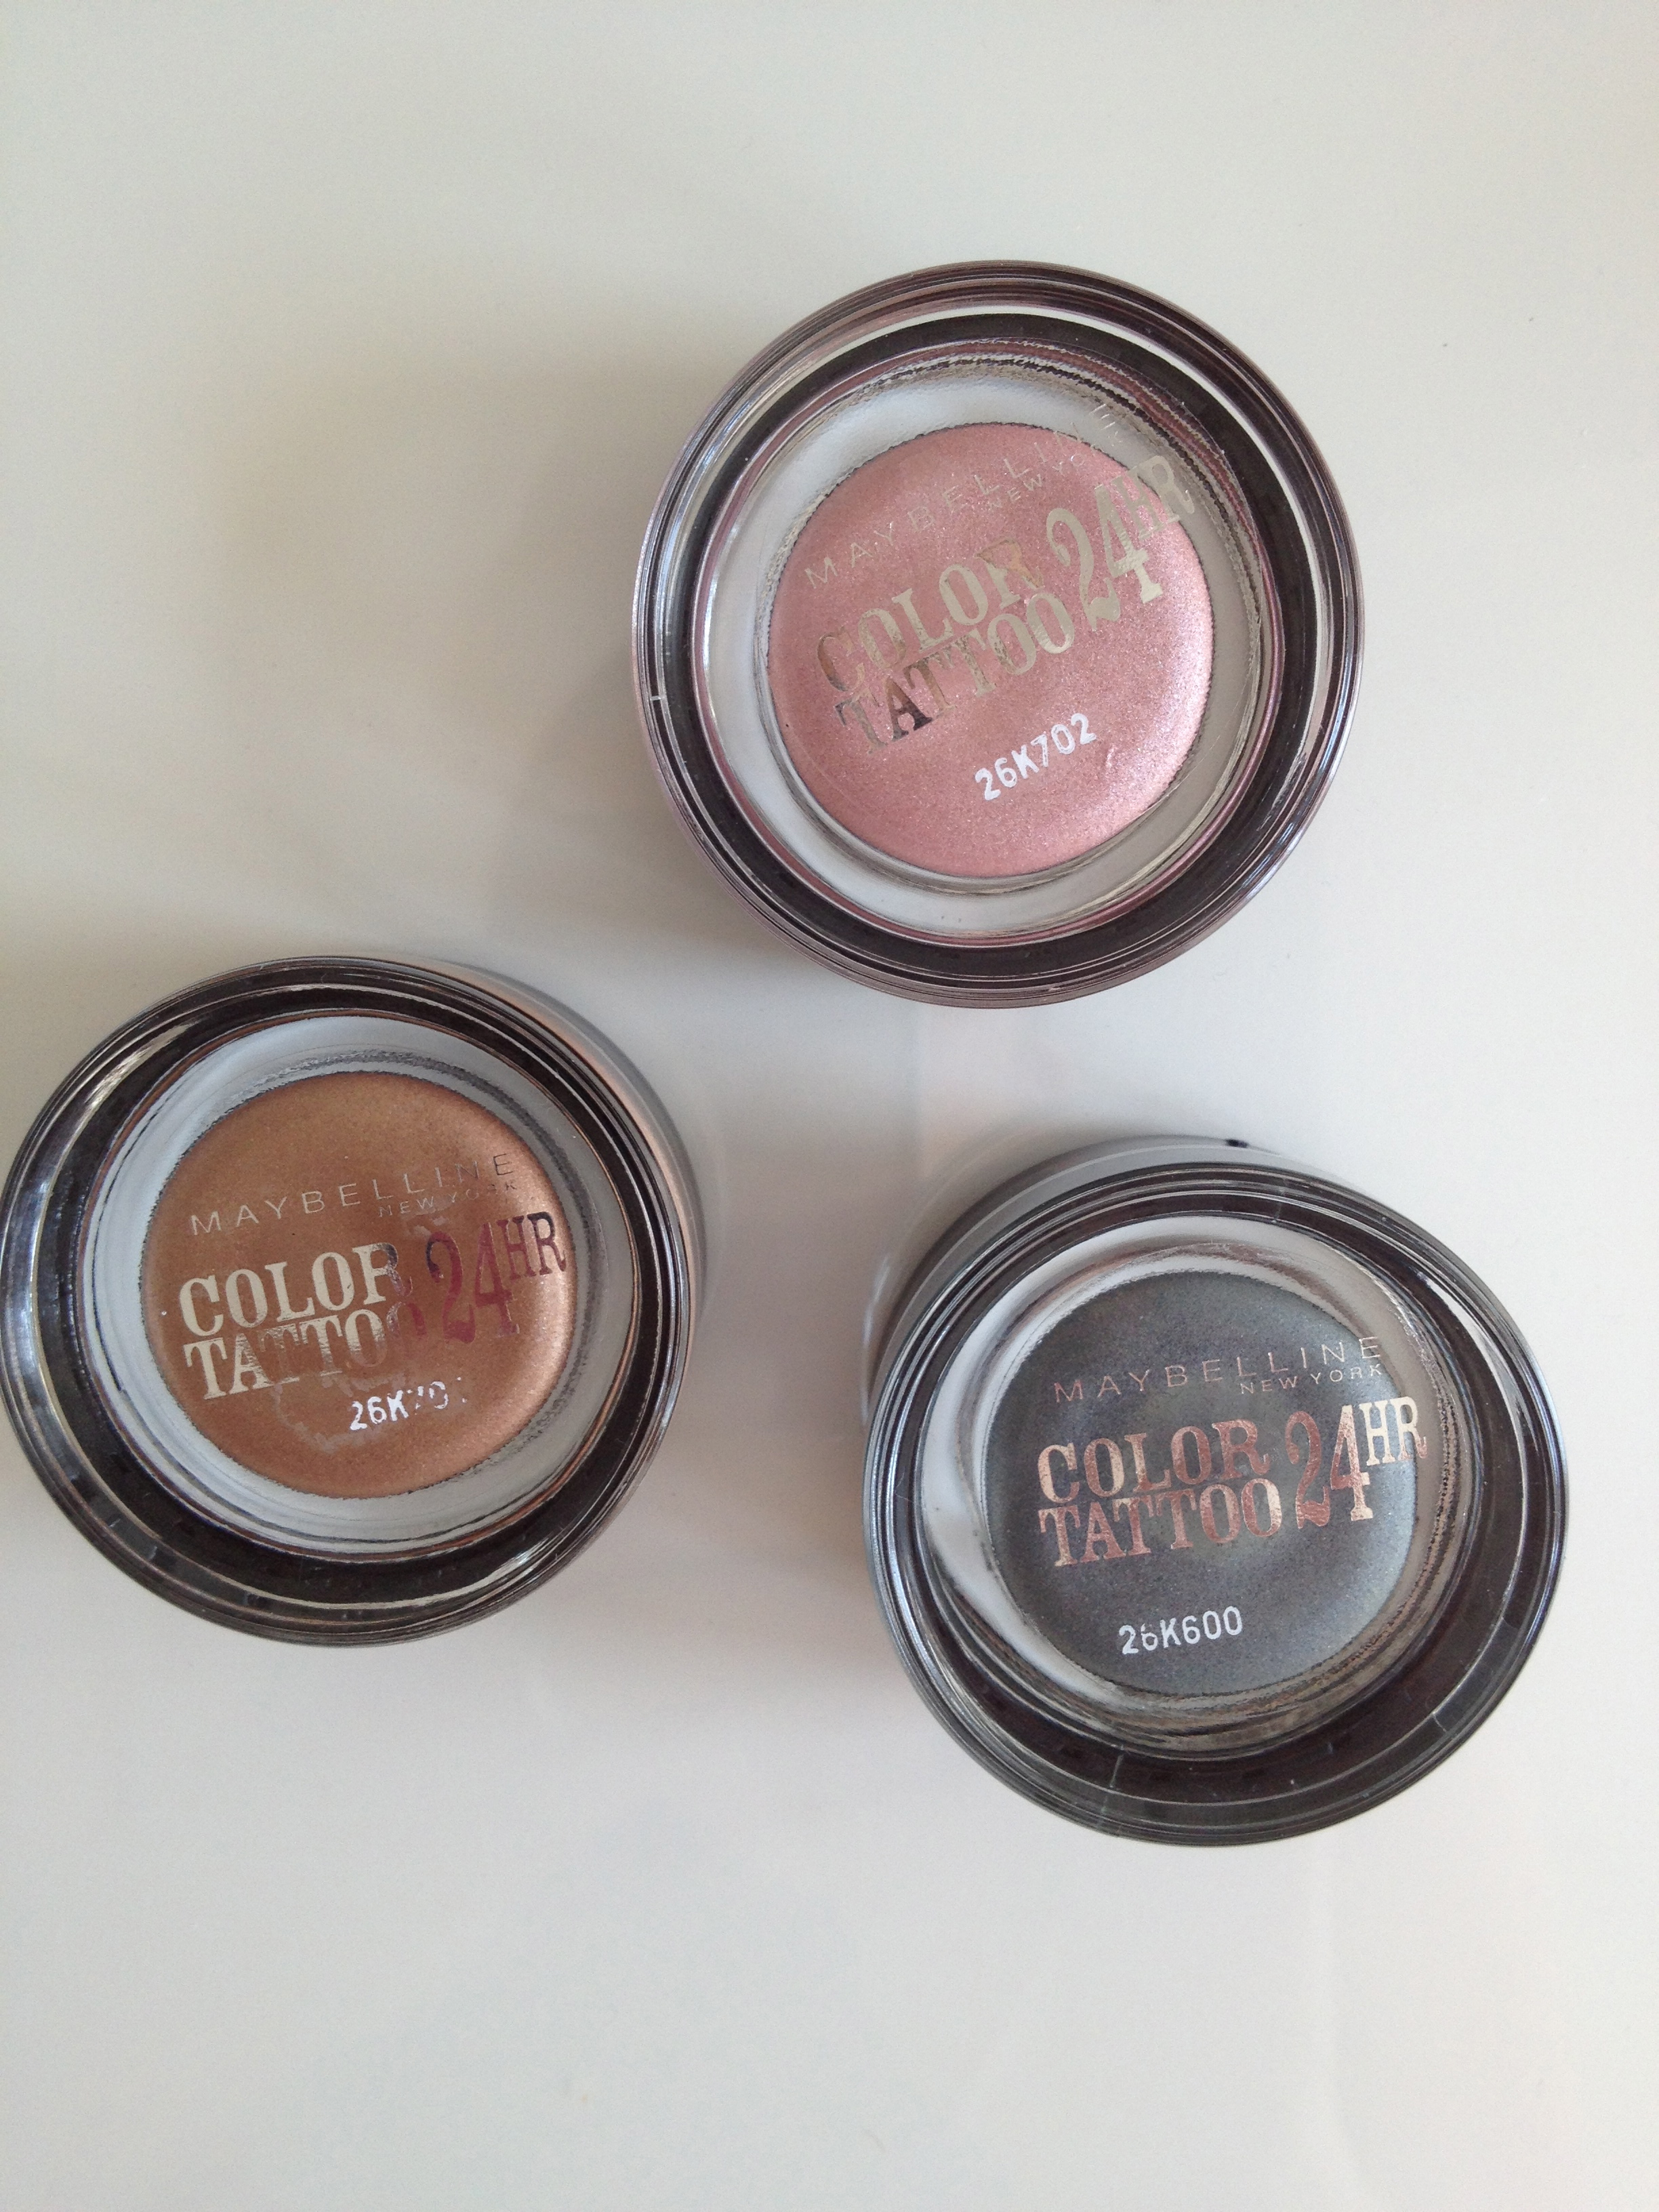 Maybelline Colour Tattoo eye shadows in Pink Gold, On and On Bronze and Immortal Charcoal